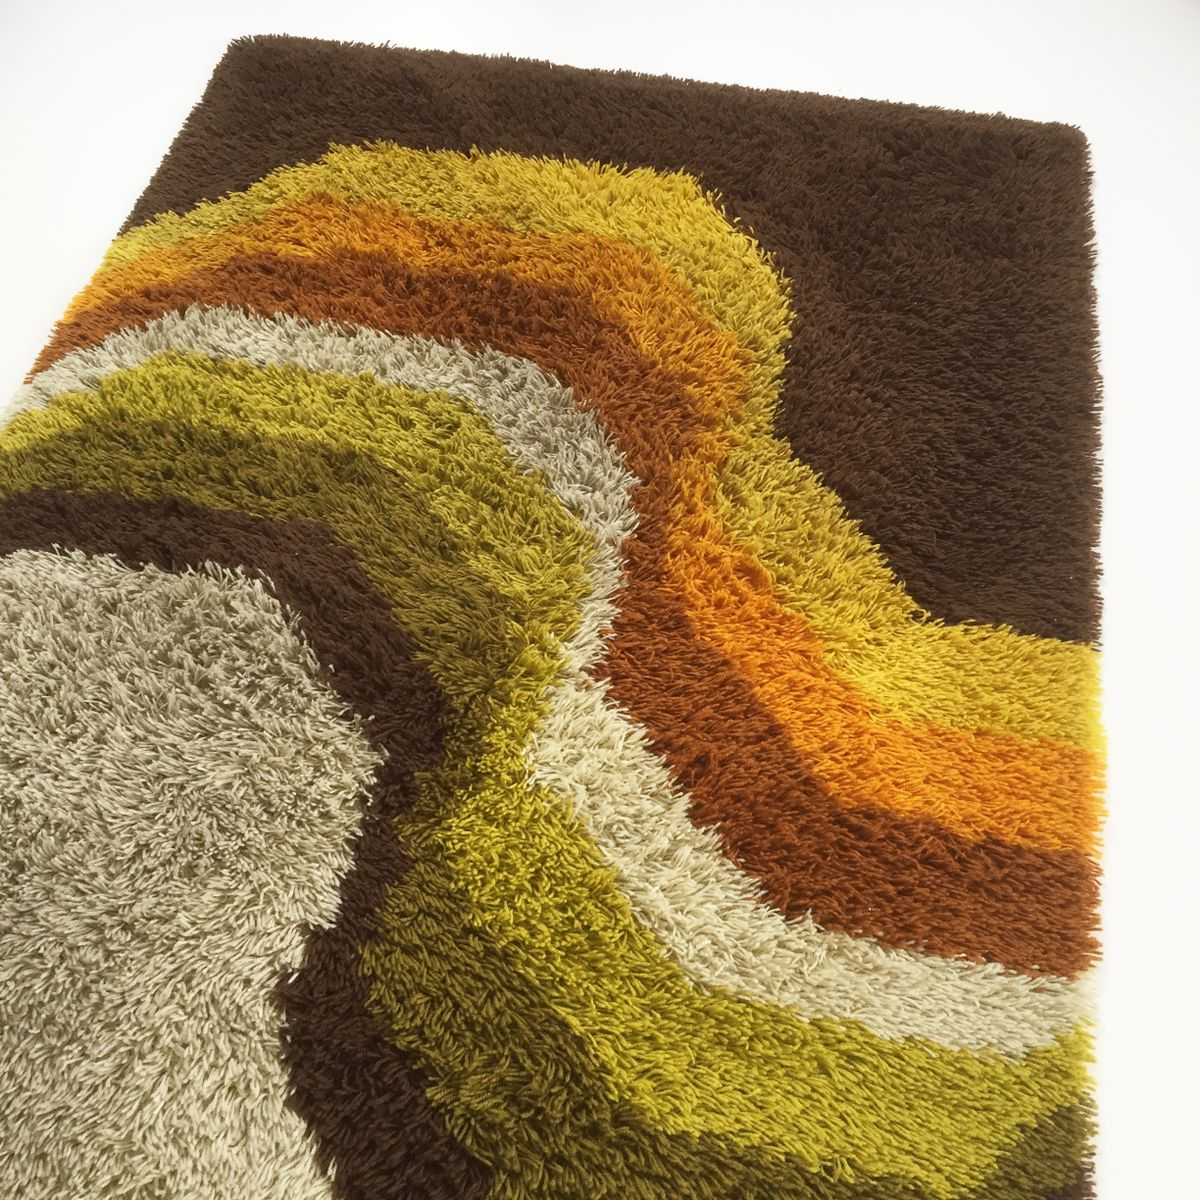 Vintage High Pile Rya Rug From Desso 1970s For Sale At Pamono